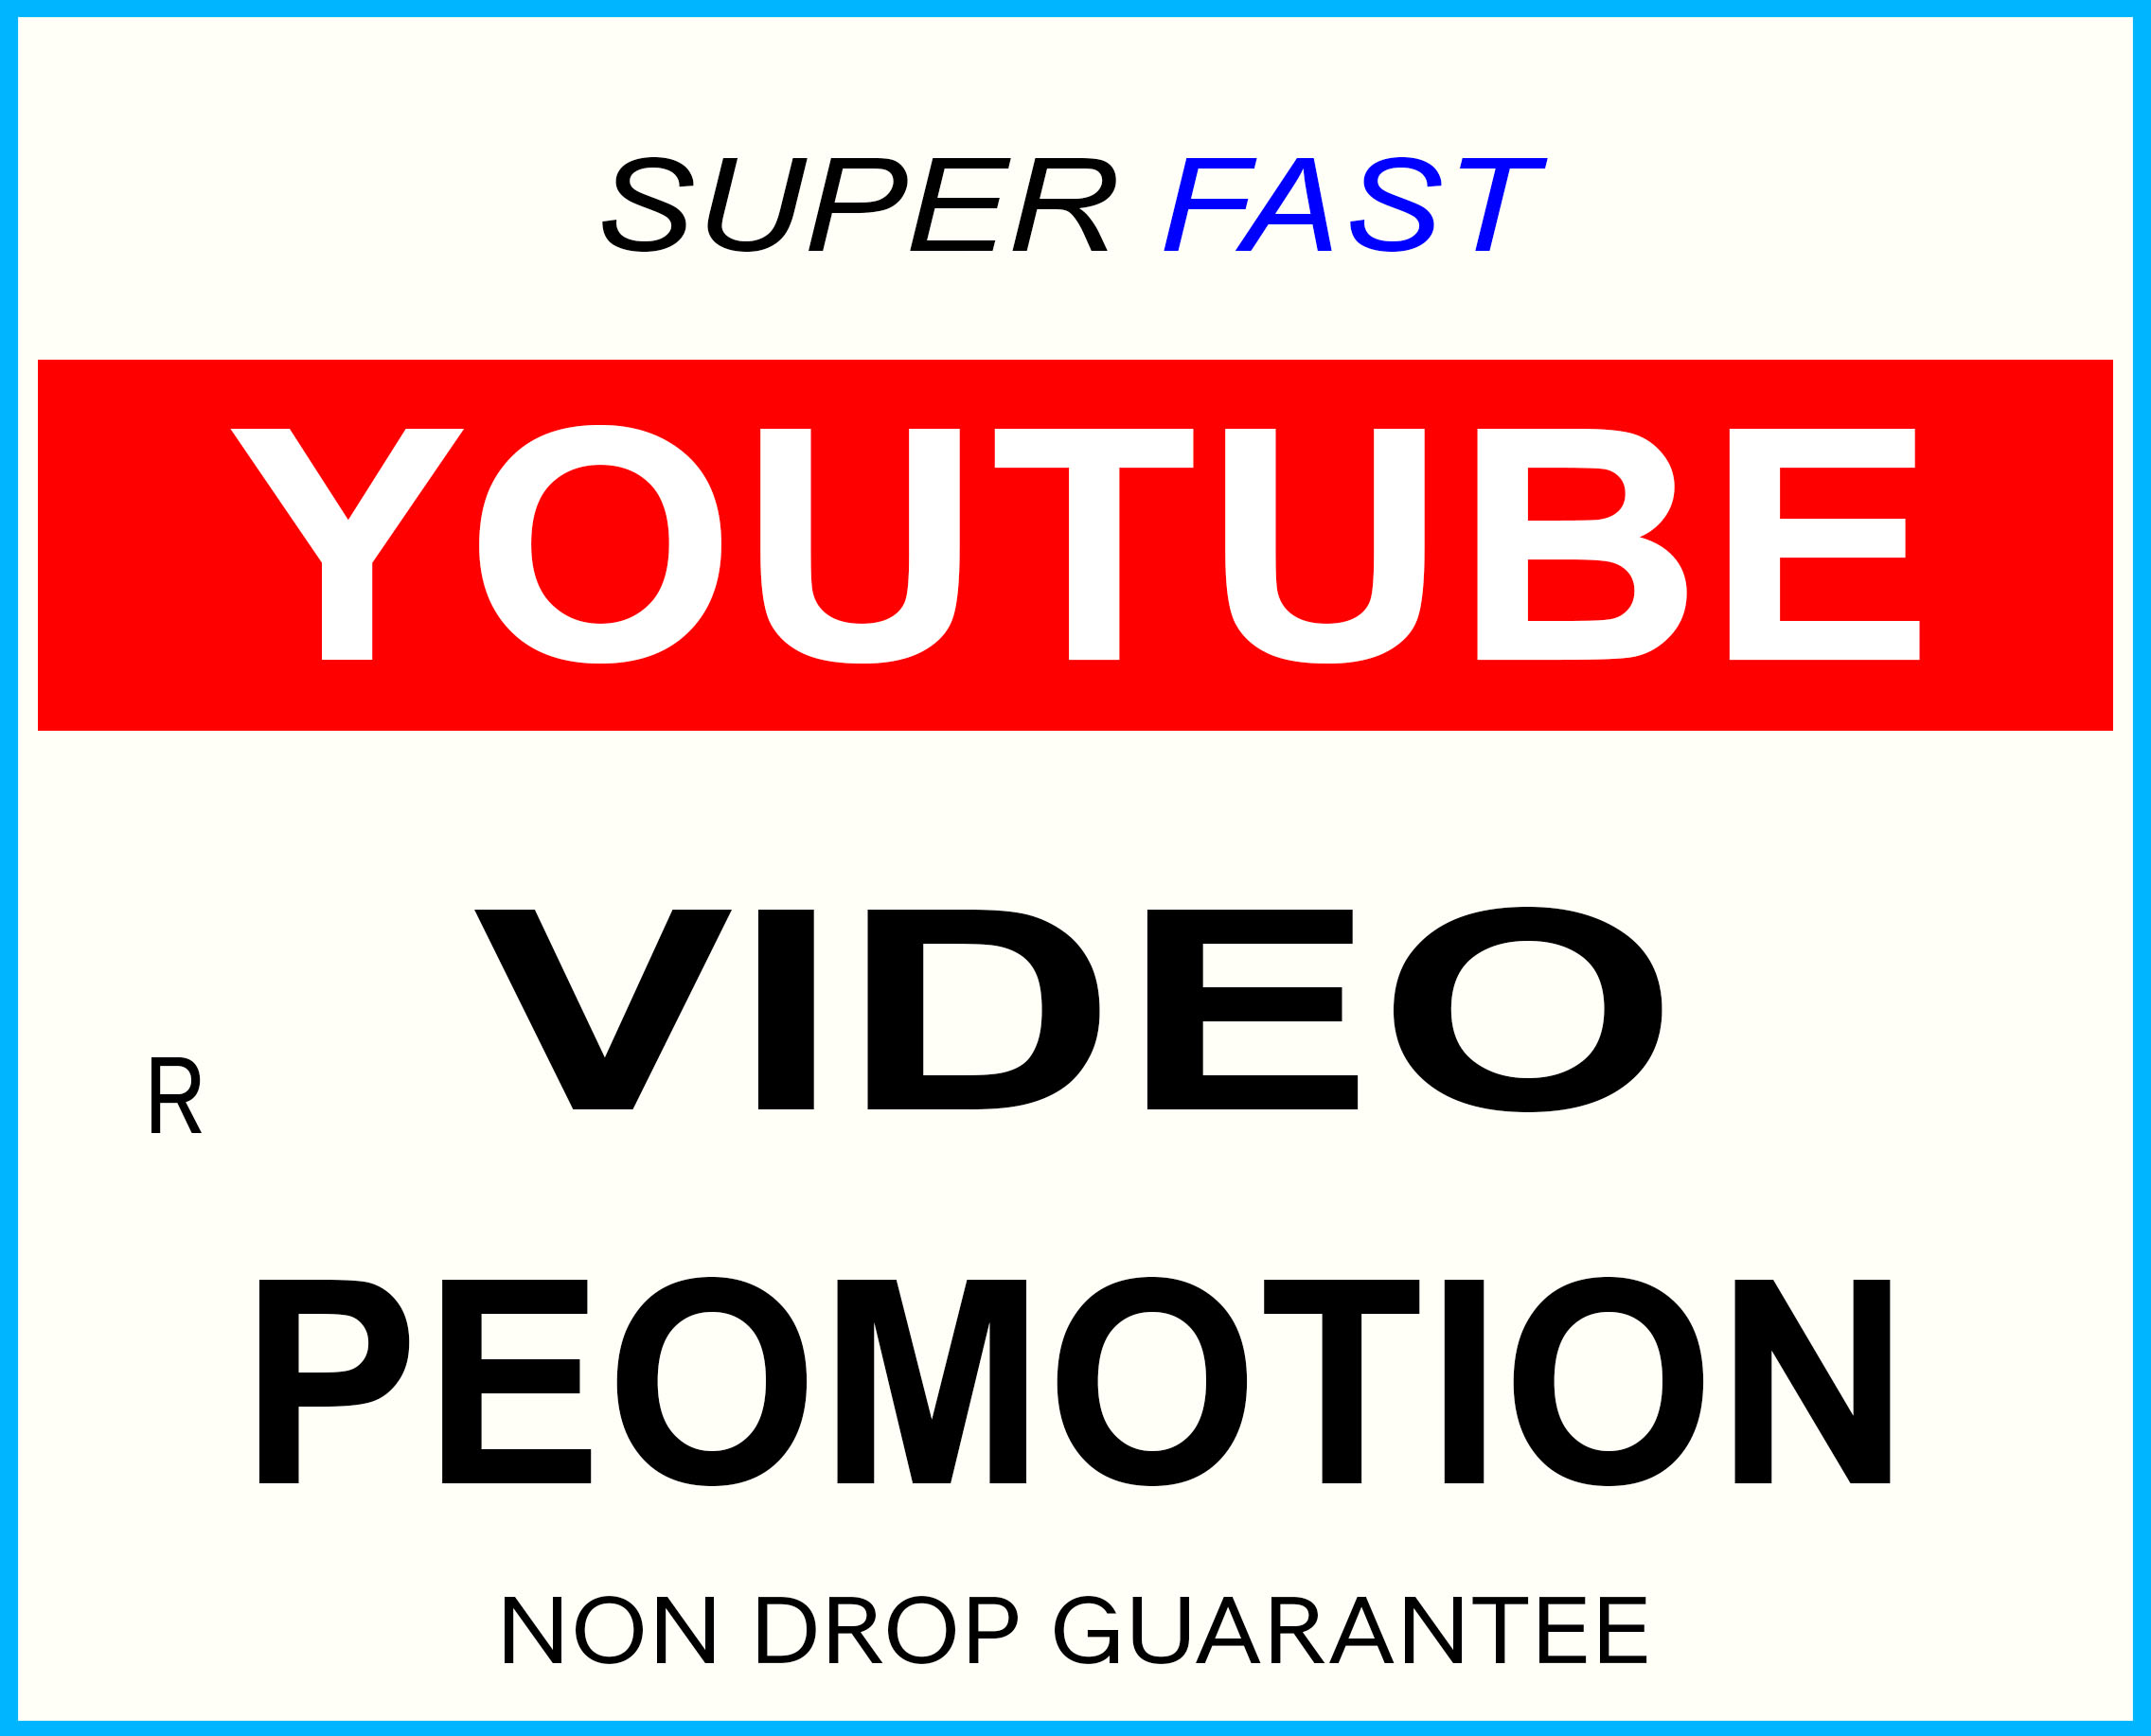 YOUTUBE VIDEO PROMOTION NON DROP SUPER FAST AND HIGH QUALITY GUARANTEED